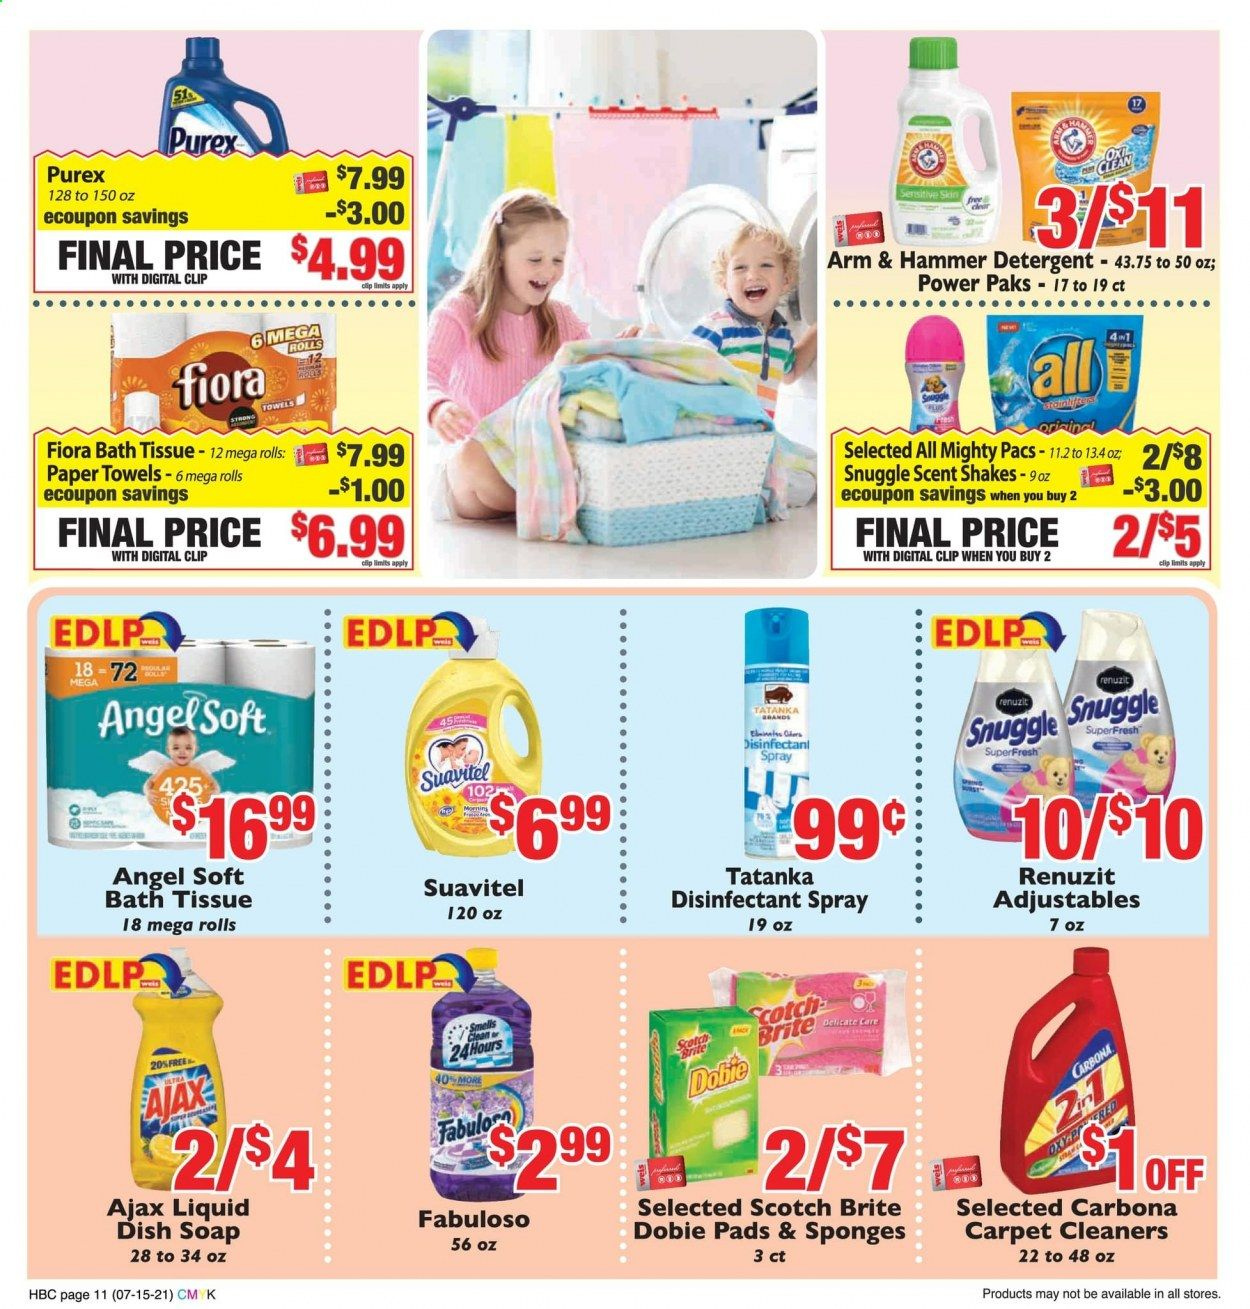 Weis Markets Ad from july 15 to august 19 2021 - Page 11